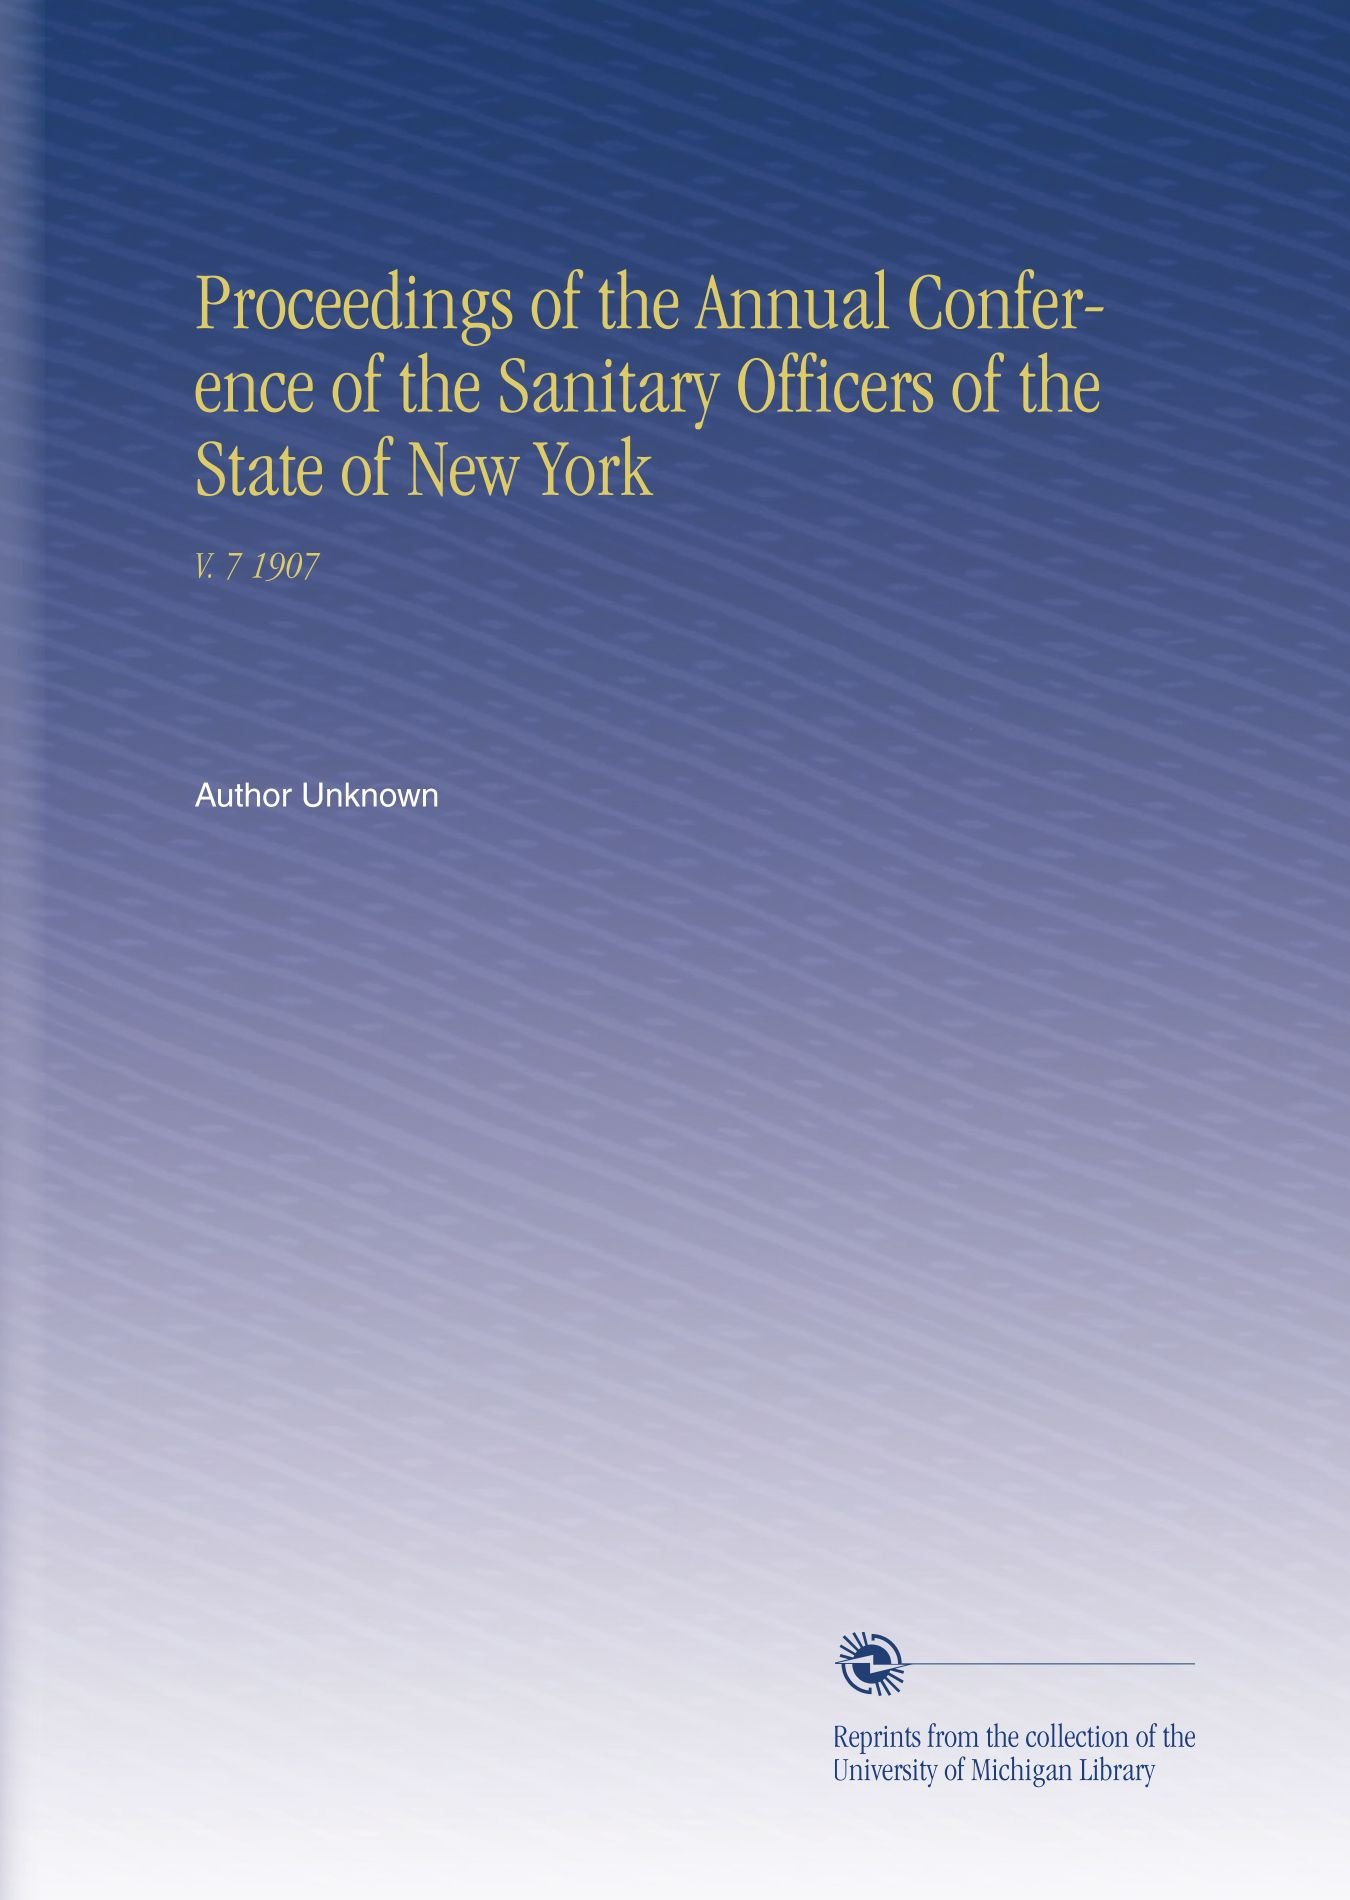 Proceedings of the Annual Conference of the Sanitary Officers of the State of New York: V. 7 1907 PDF